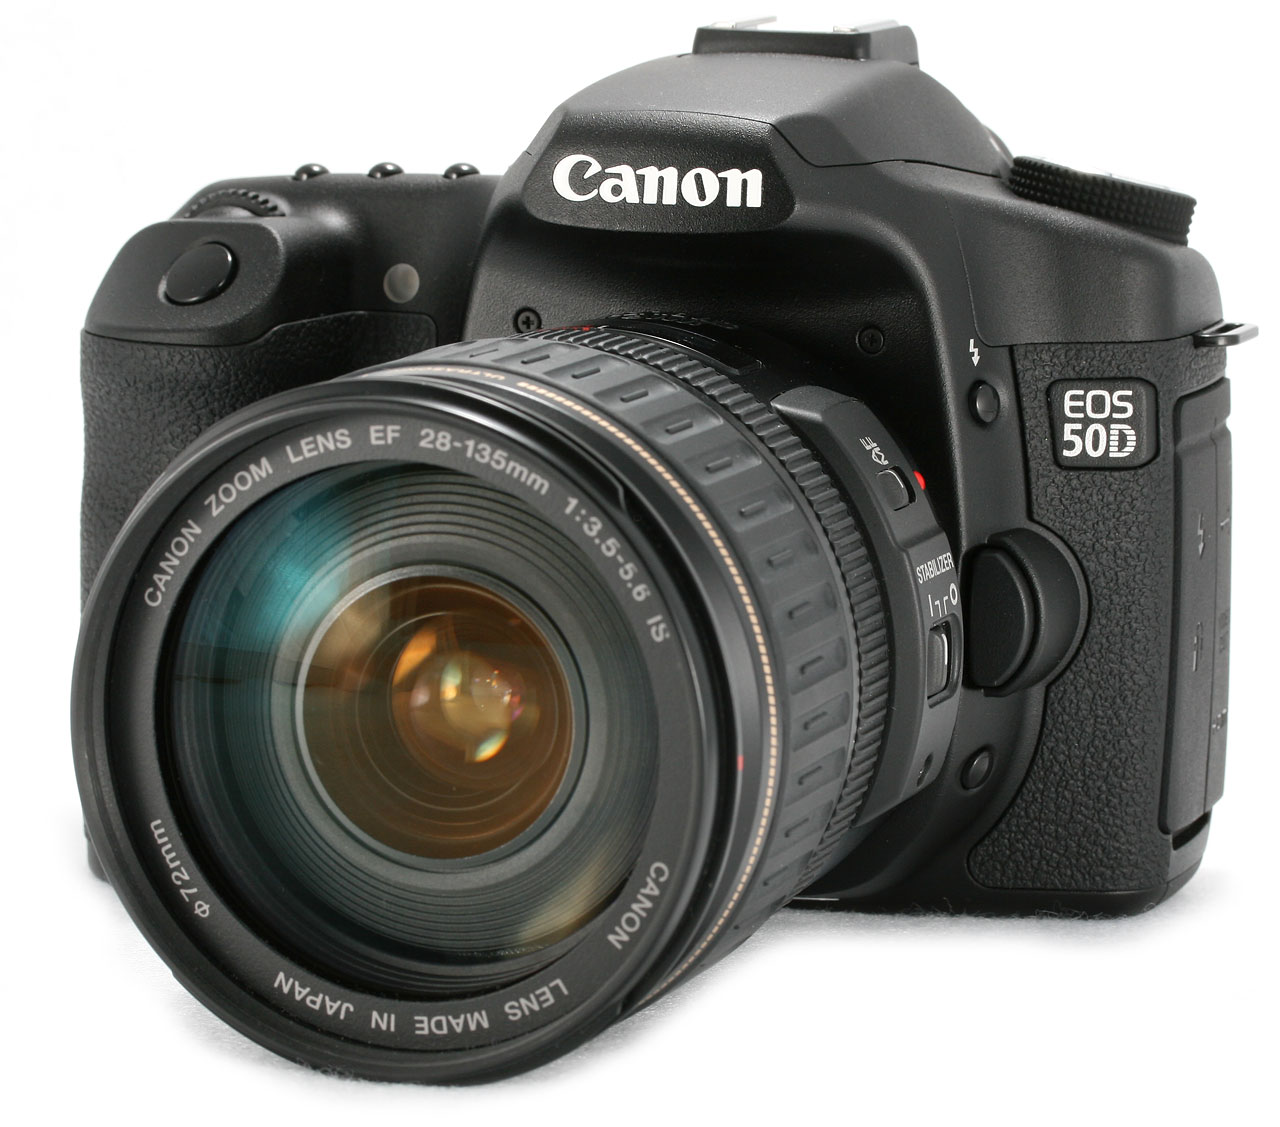 Download Pictures From Your Canon Digital Camera